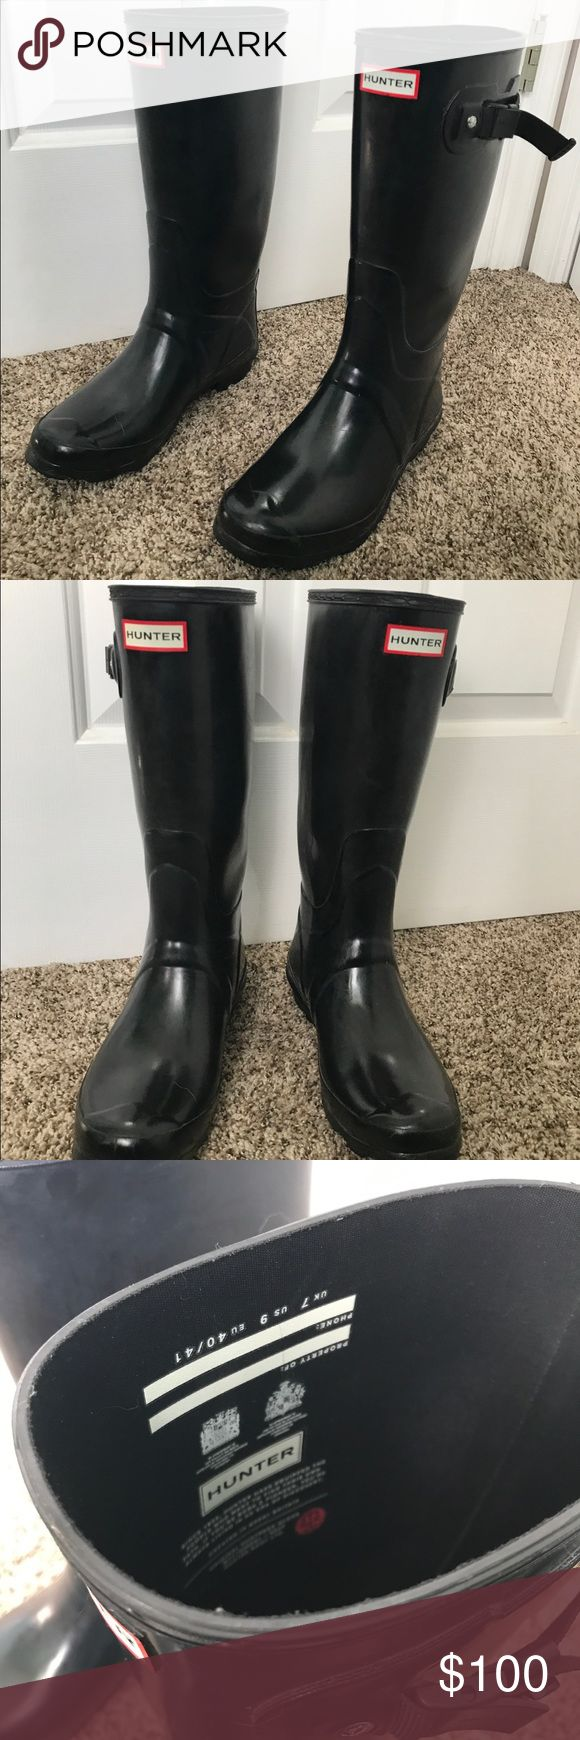 Hunter Original Black Boots These boots have been worn but they are still in great condition. They go up to the mid calf and they are also wide calf. Hunter Boots Shoes Winter & Rain Boots